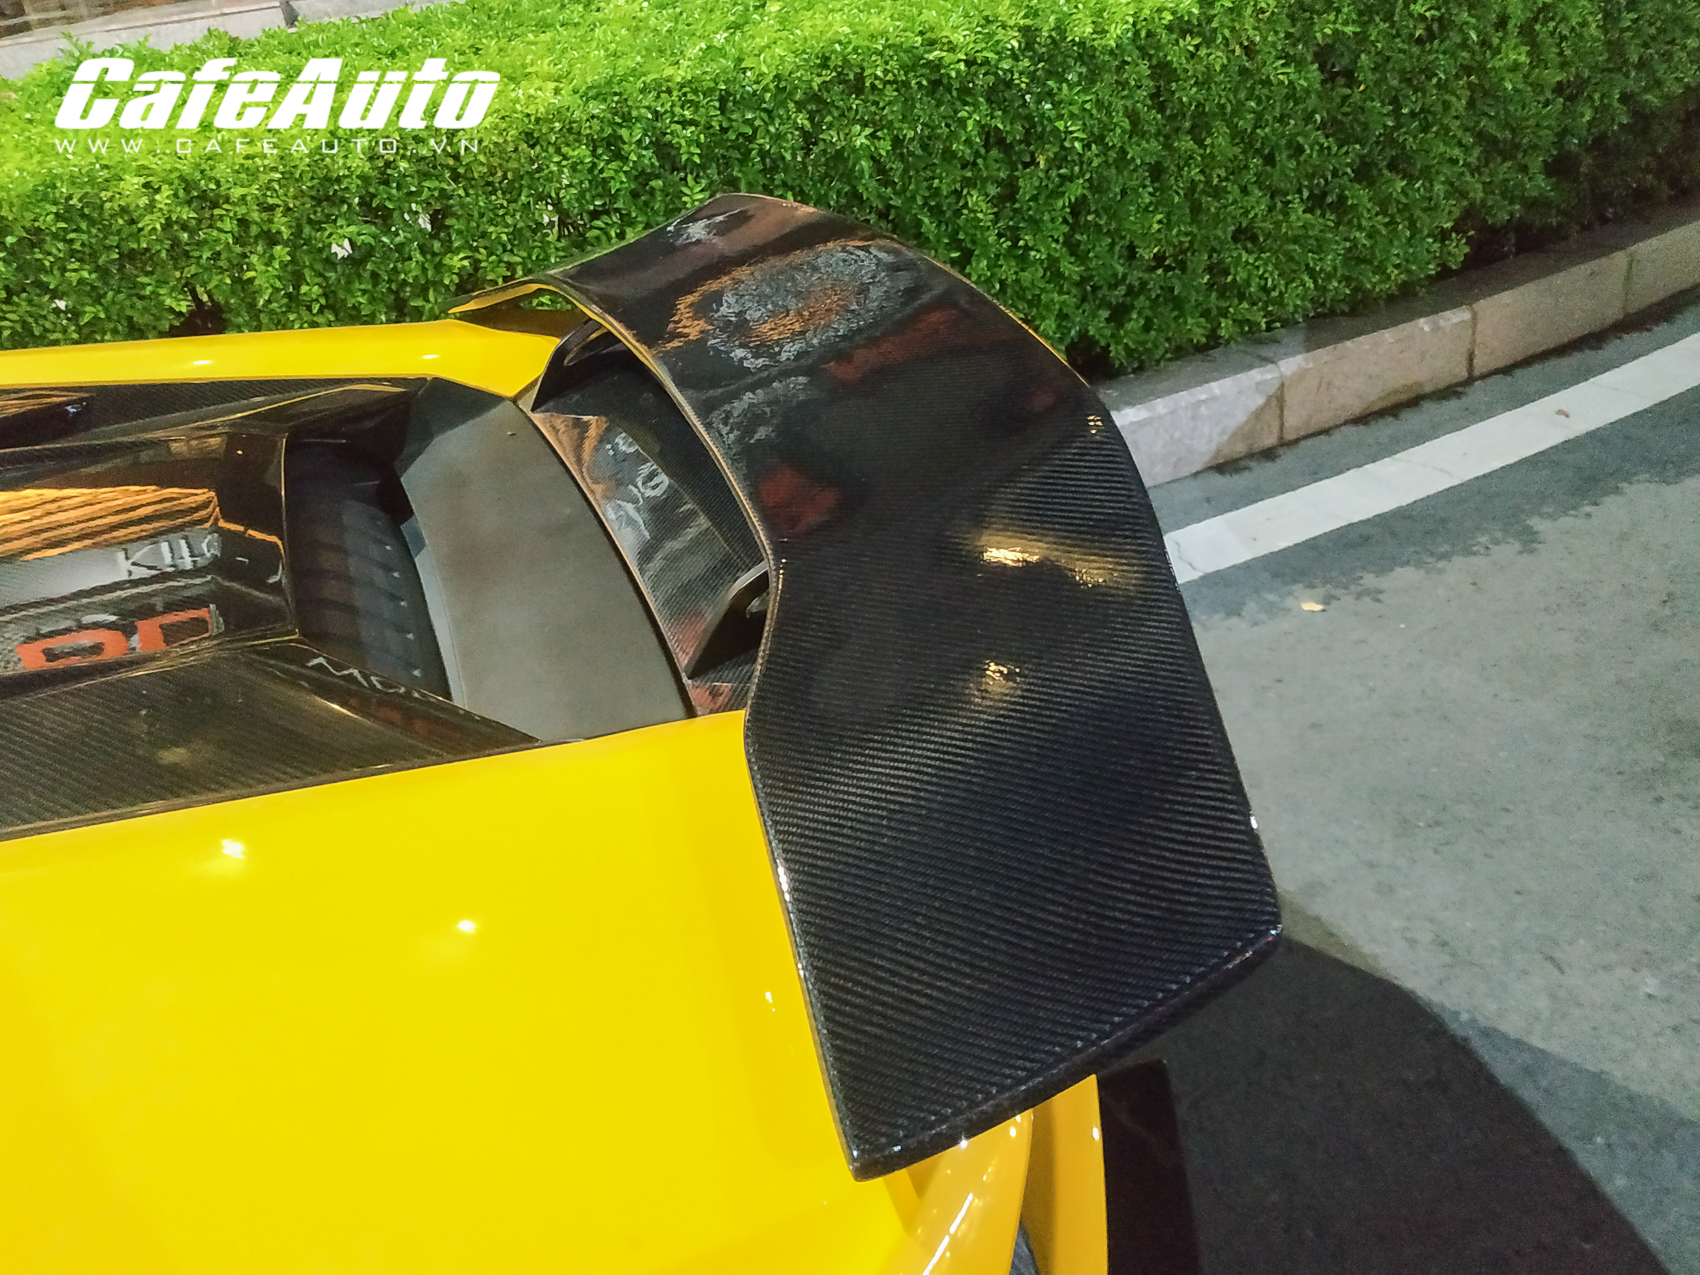 huracanmansory-cafeautovn-8